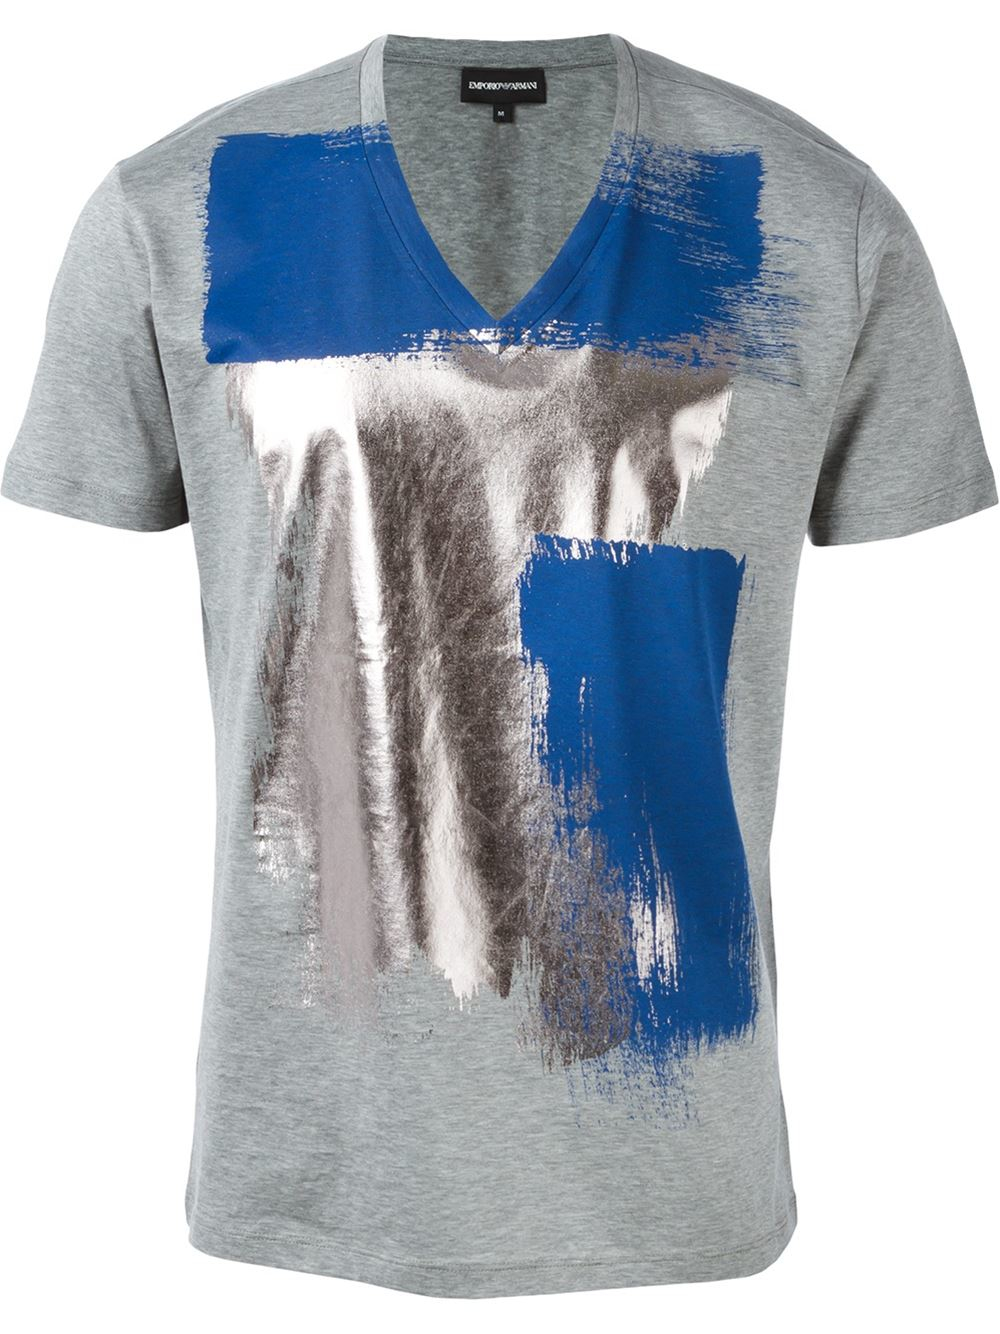 emporio armani painting strokes t shirt in blue for men. Black Bedroom Furniture Sets. Home Design Ideas